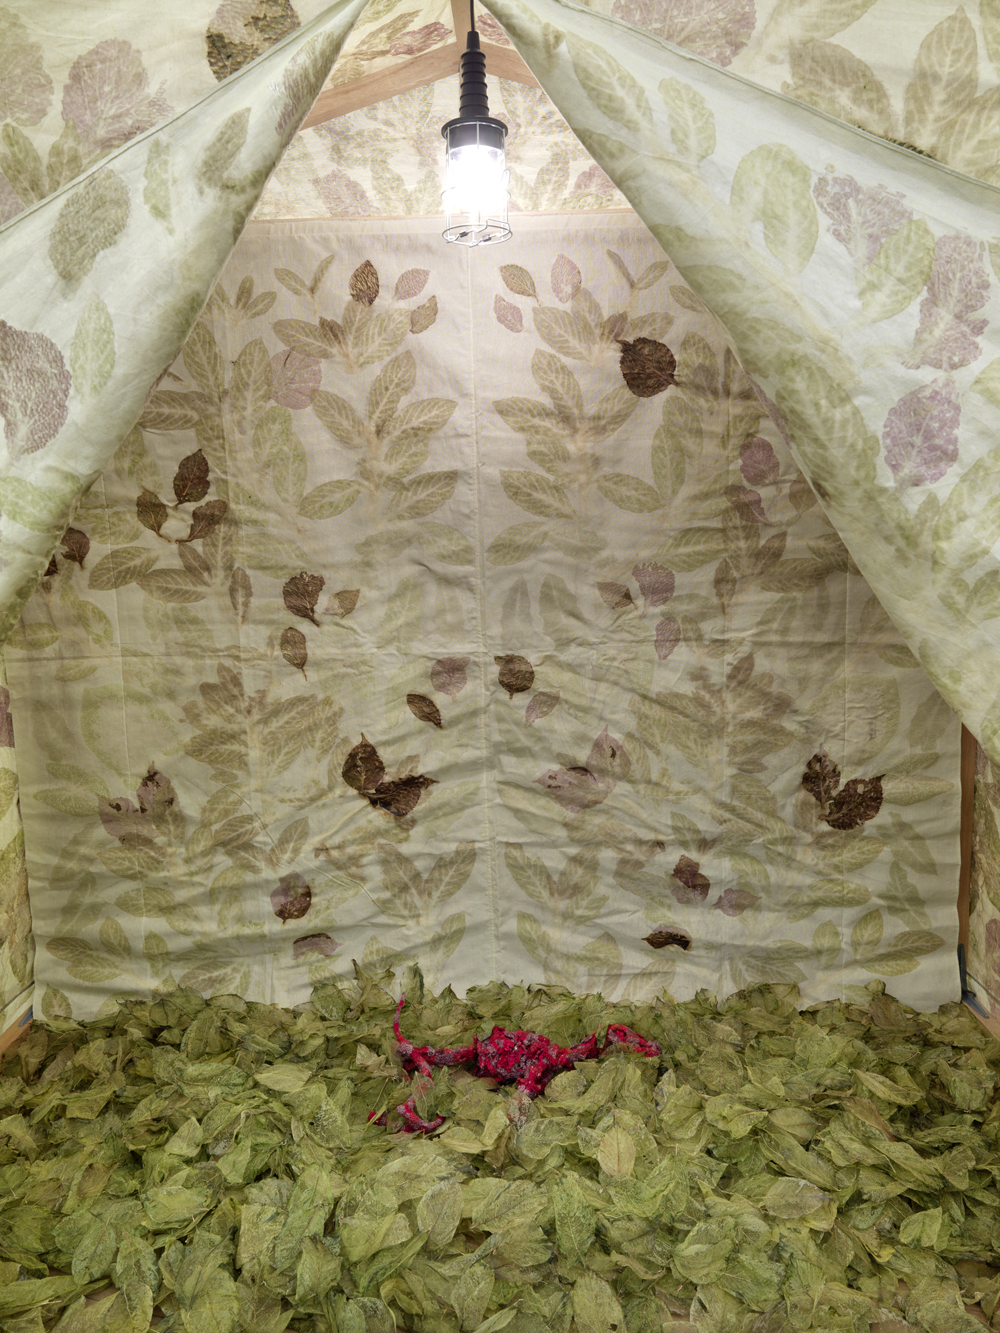 Wall tent pattern wall tent designs with wall tent for Wall tent pattern